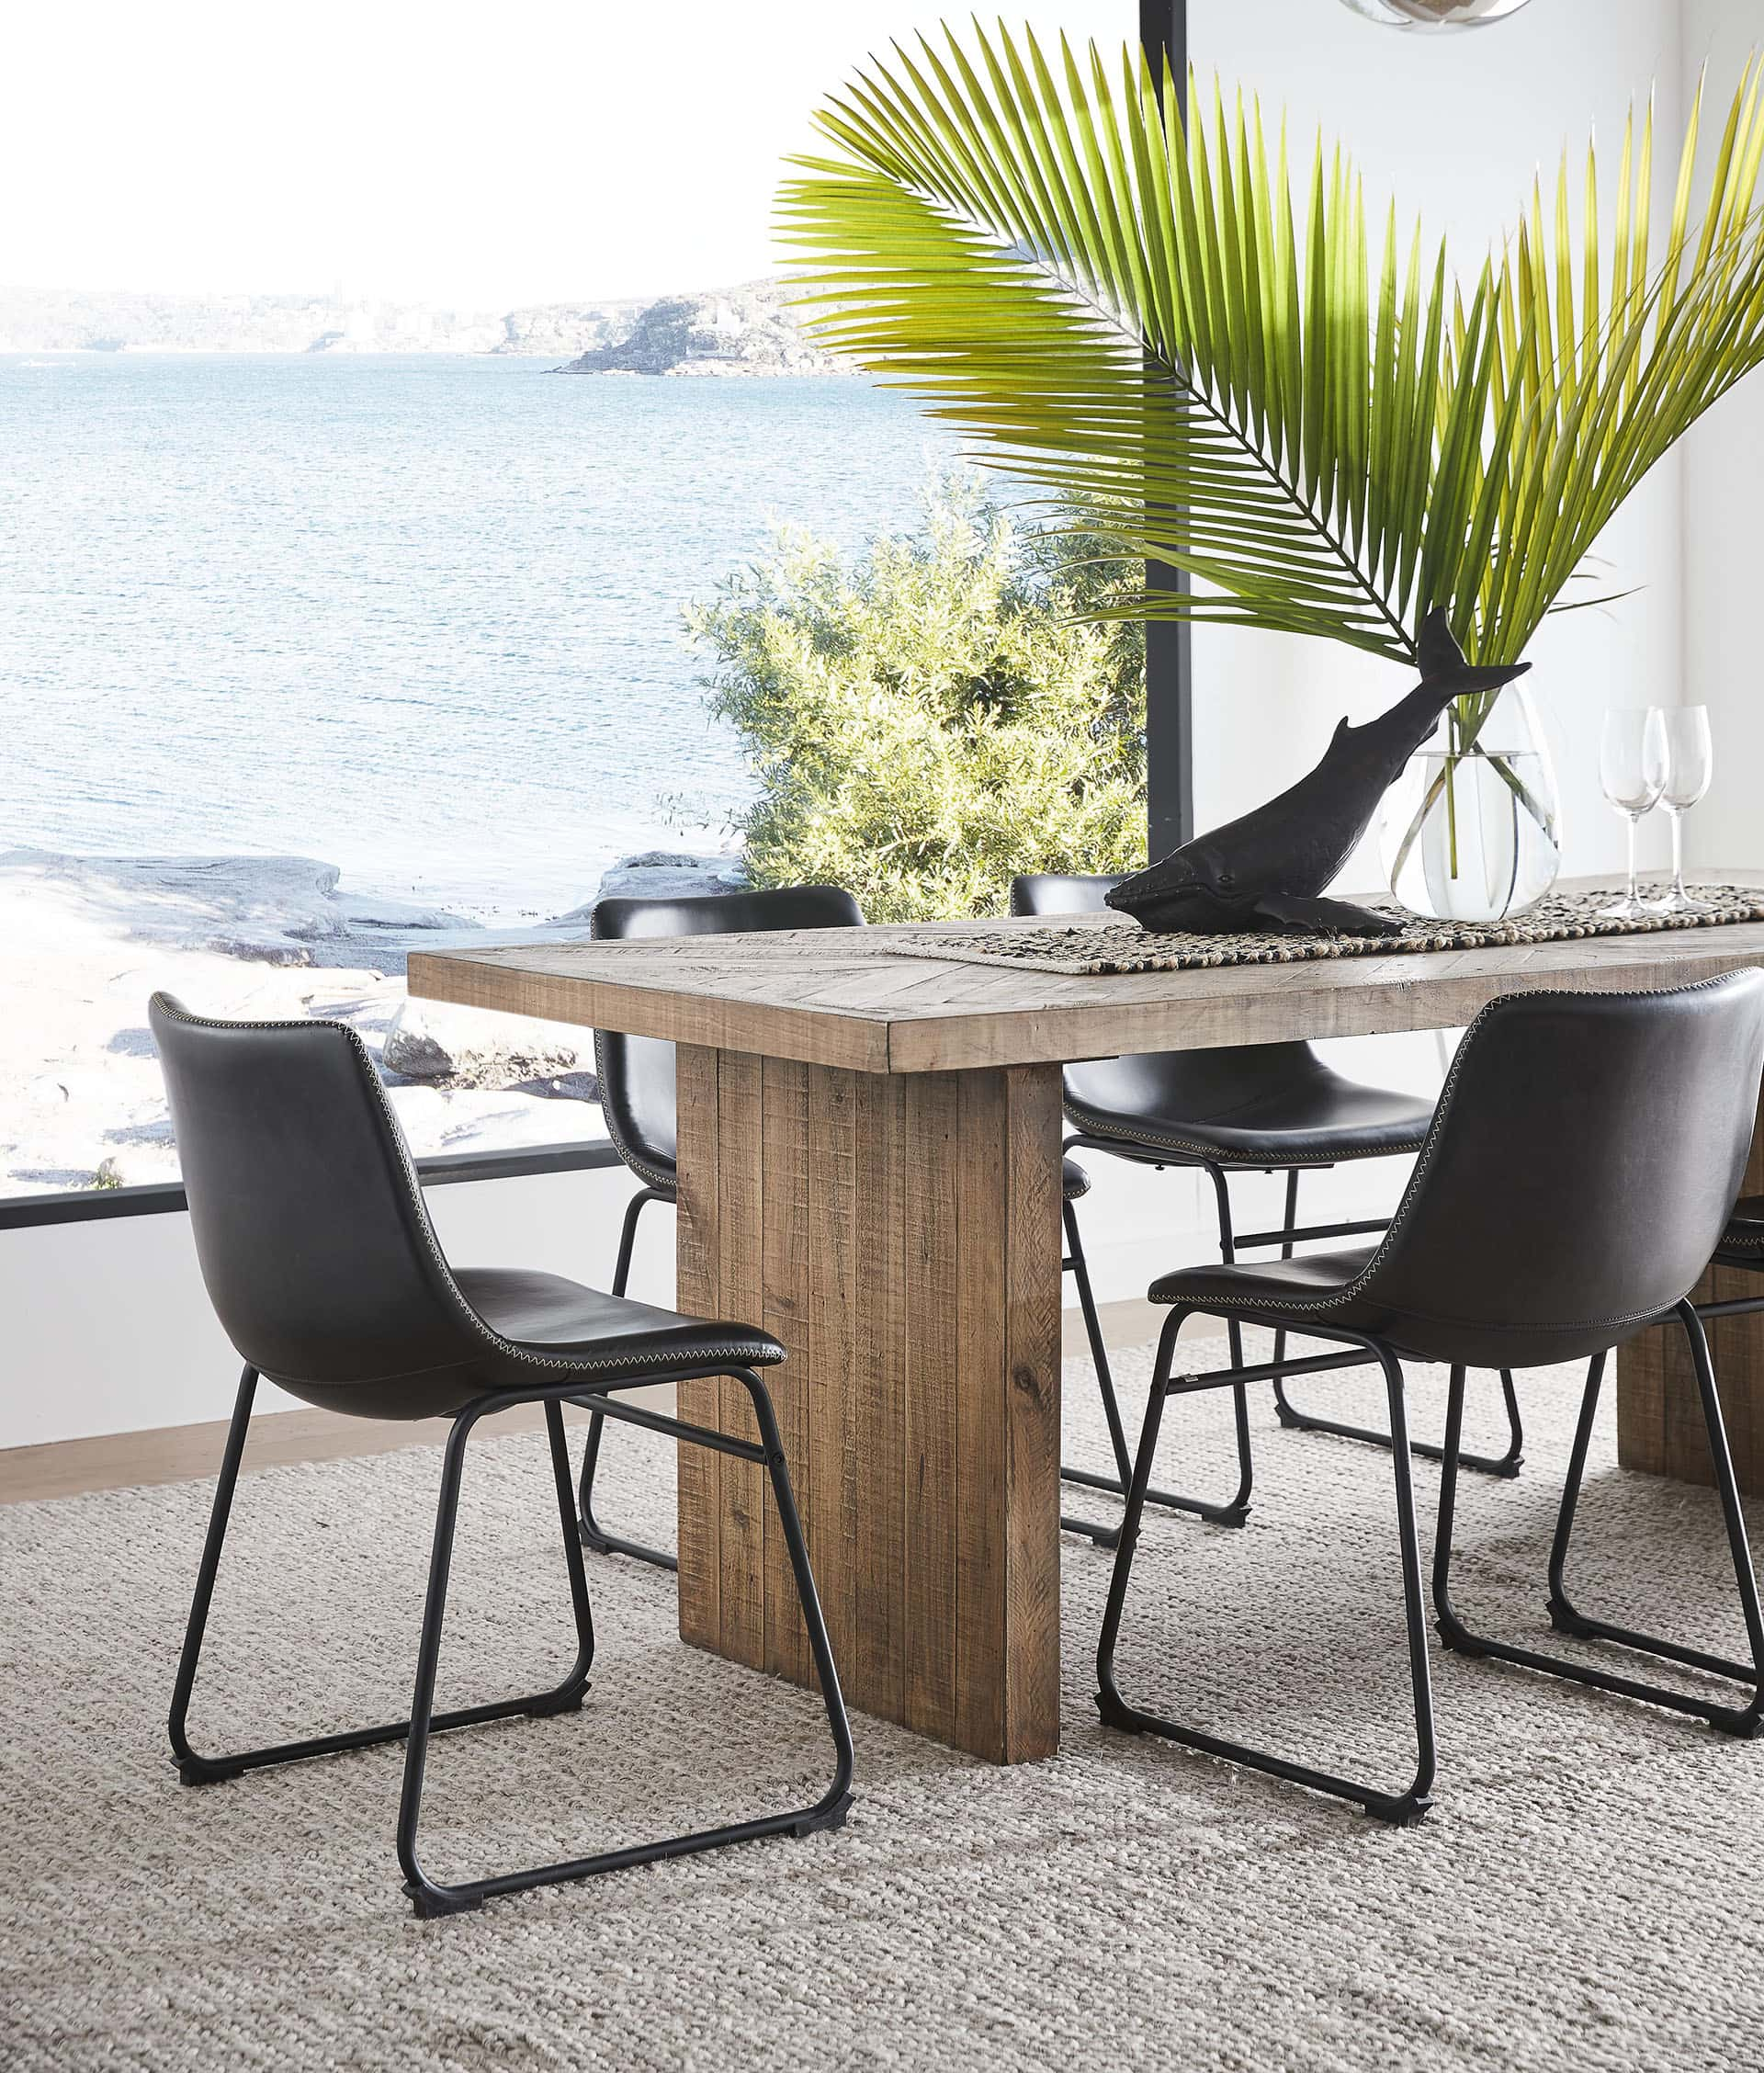 coastal dining table with black leather armchairs by window with view of the sea